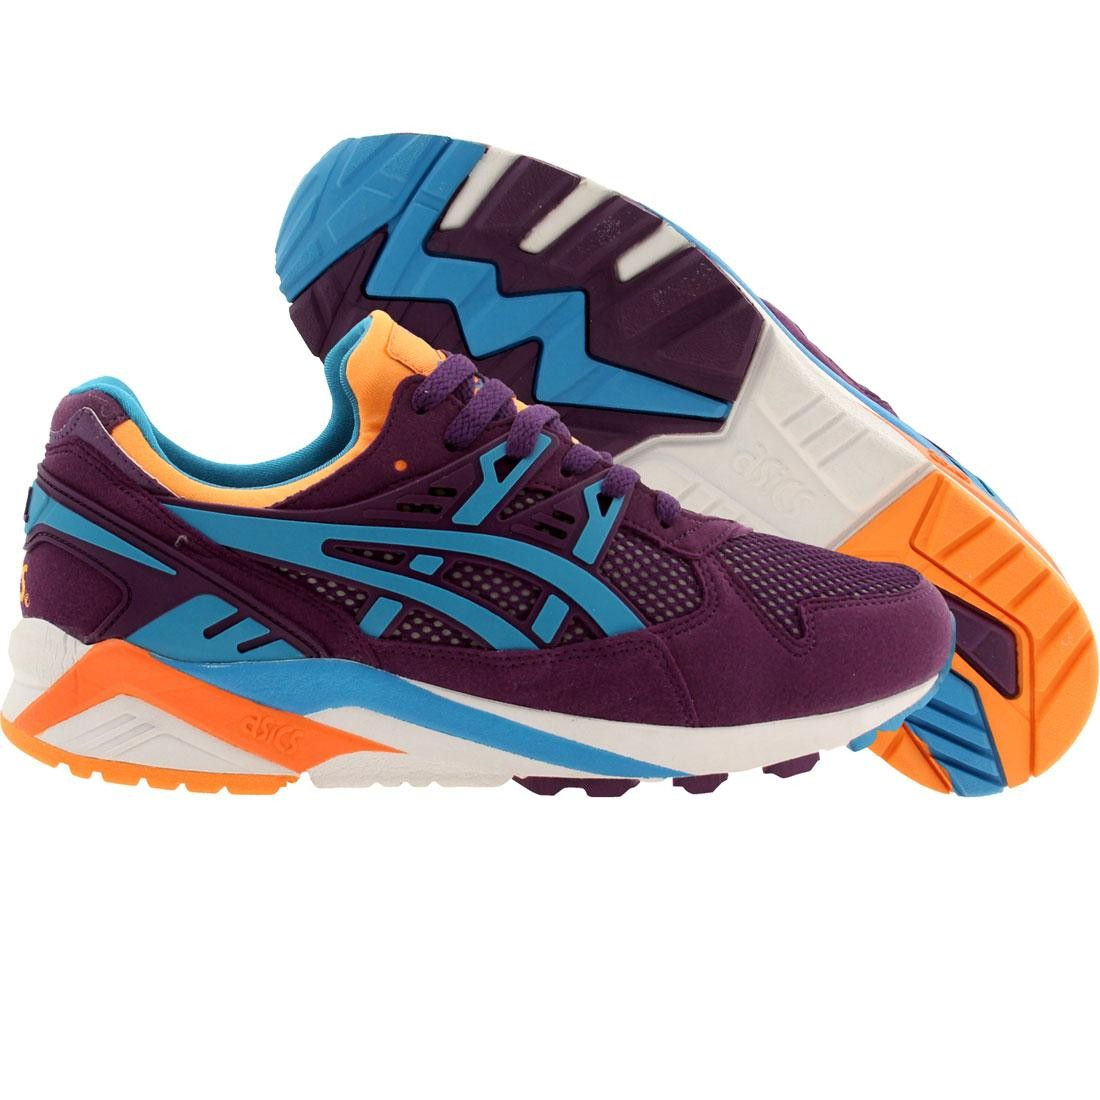 【海外限定】アシックス トレーナー 靴 メンズ靴 【 ASICS TIGER MEN GELKAYANO TRAINER FLASH PACK PURPLE ATOMIC 】